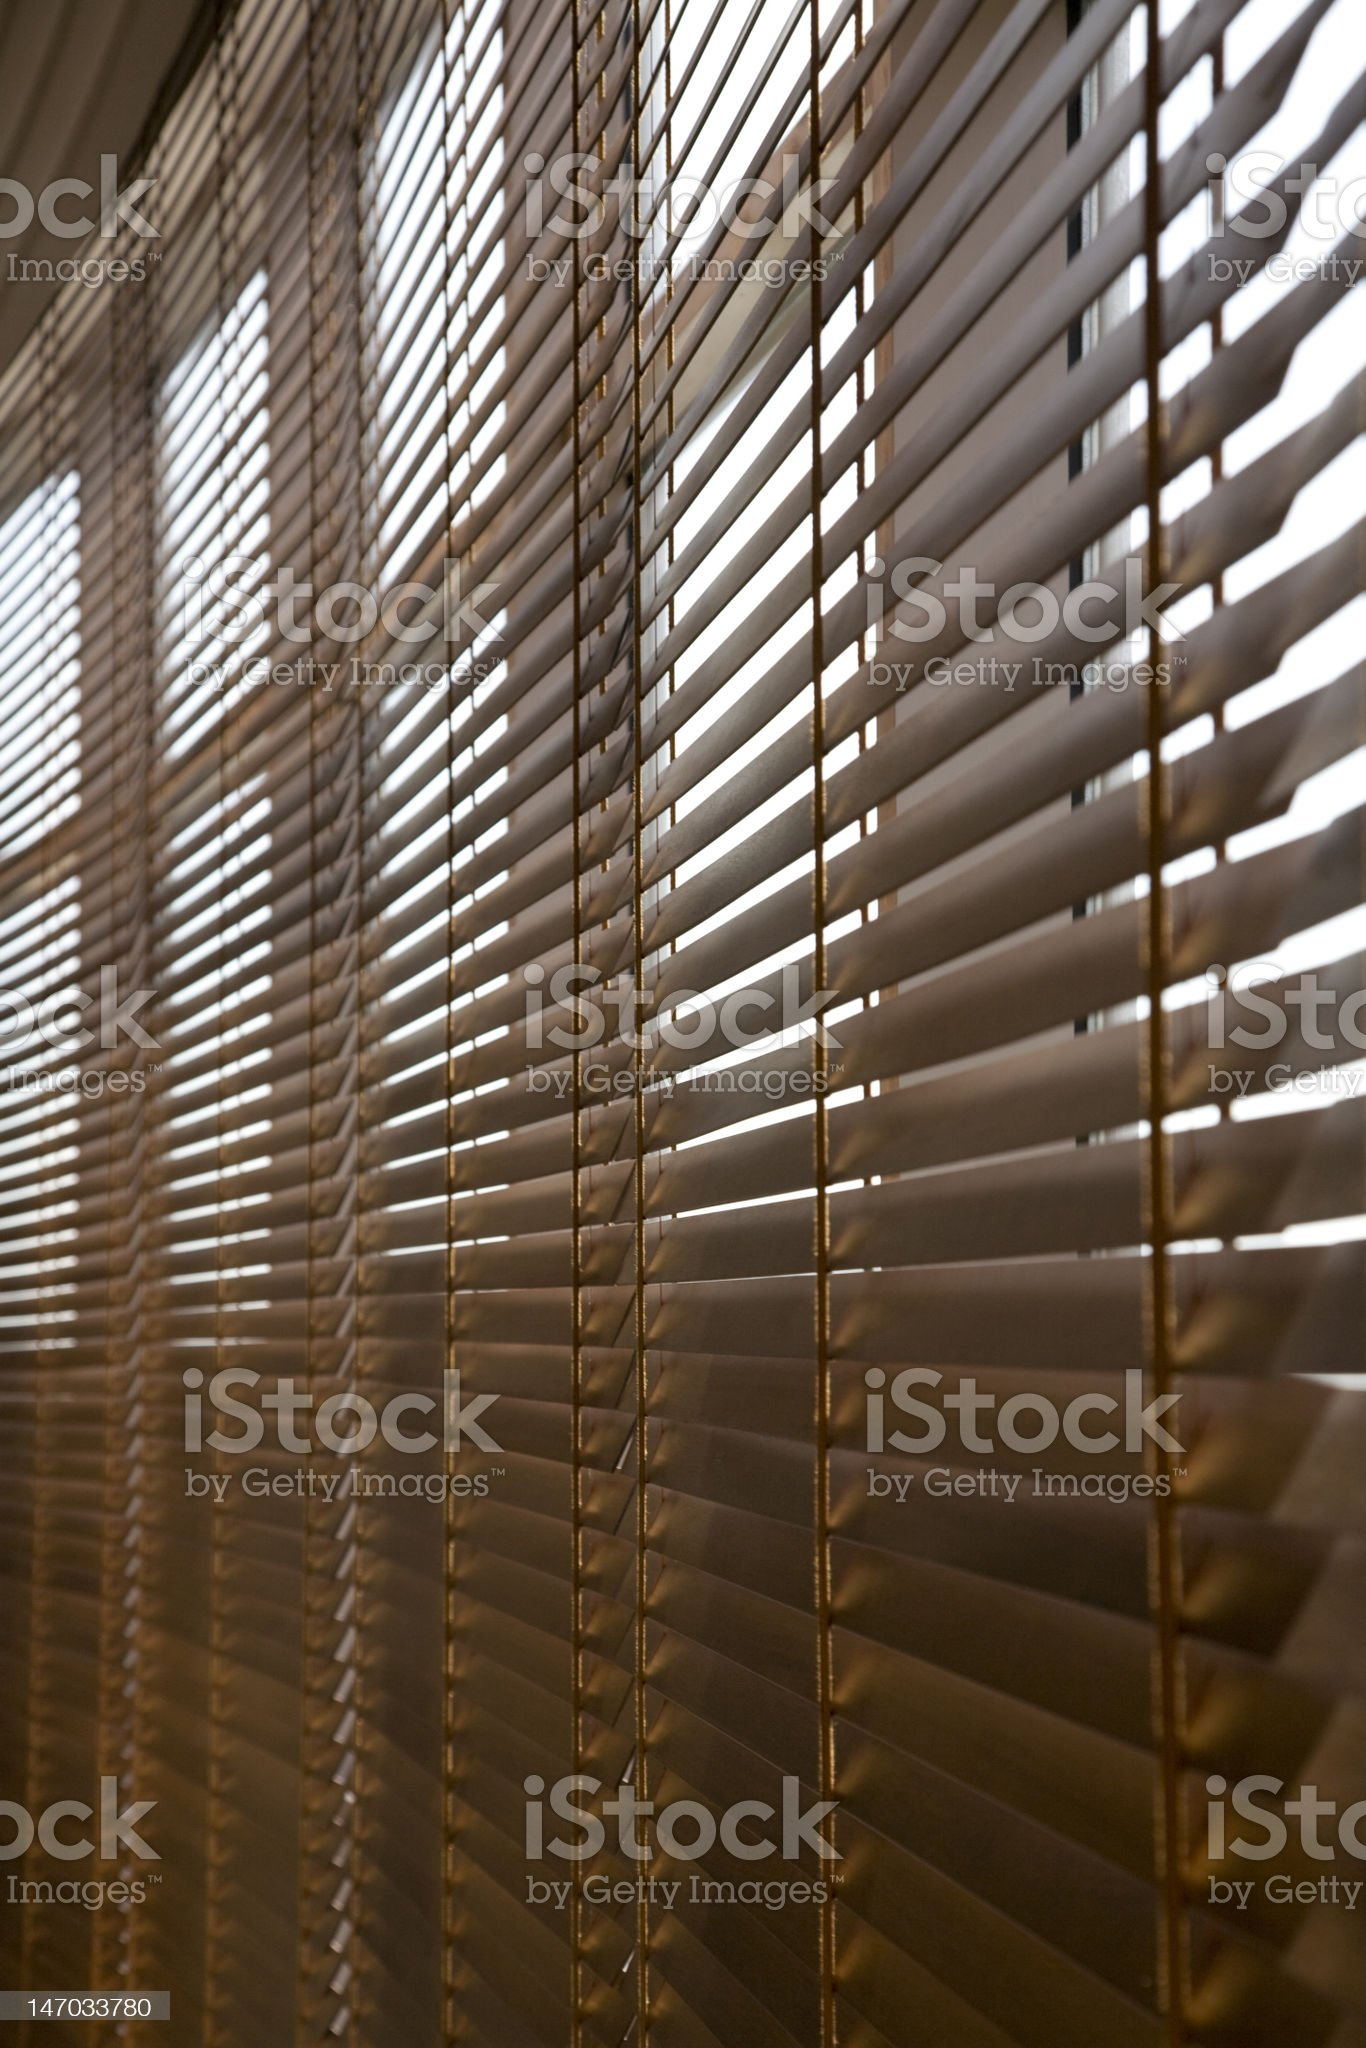 Wooden Blinds. royalty-free stock photo